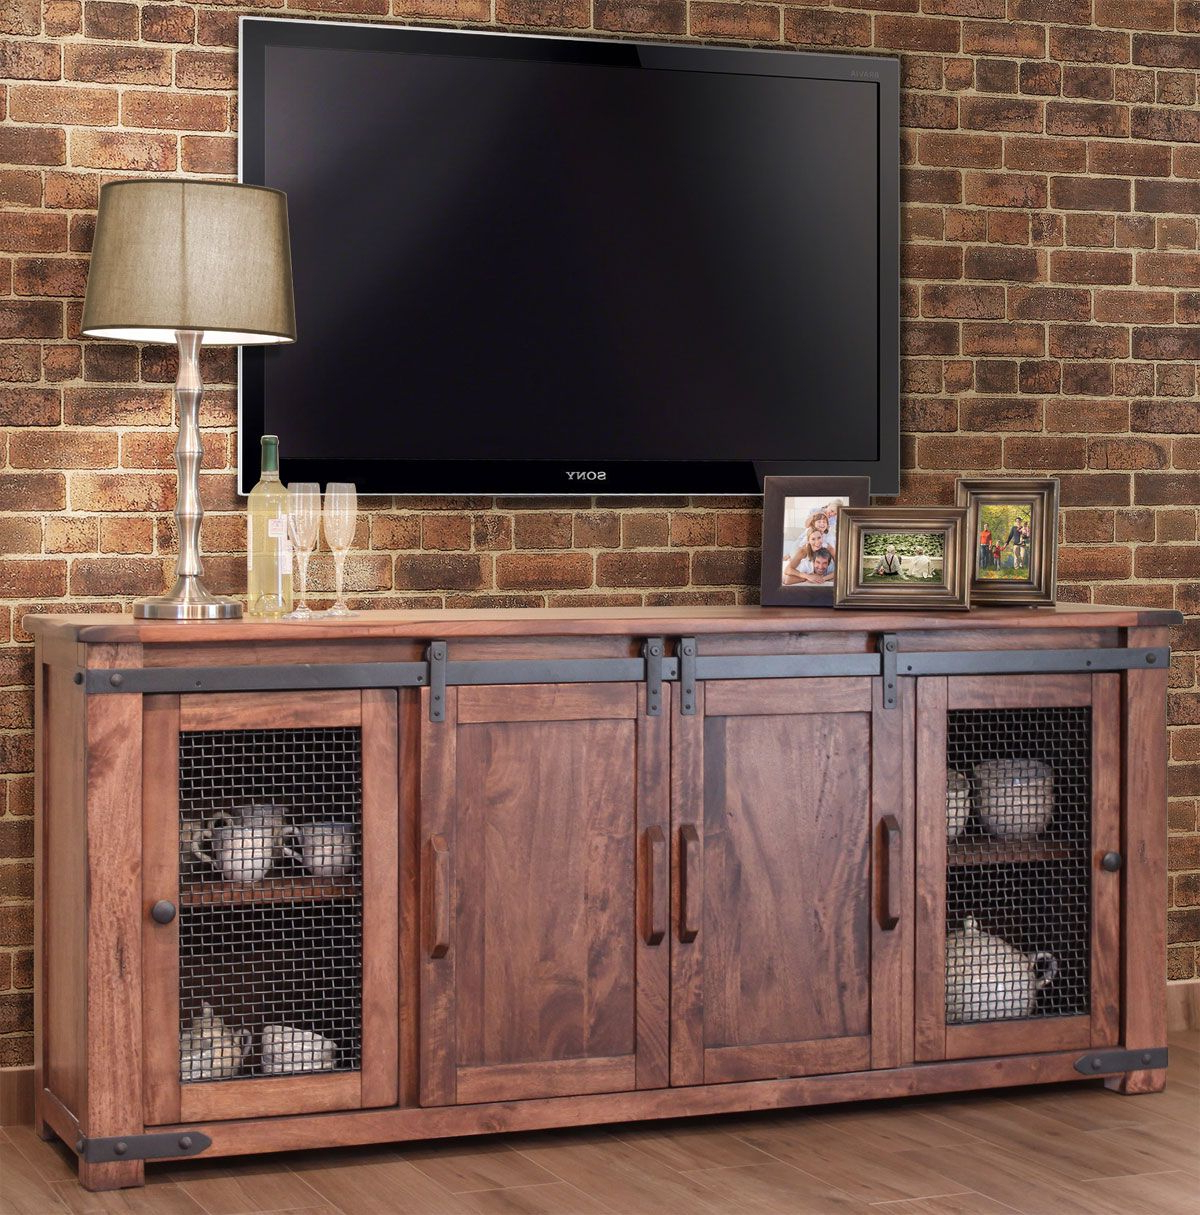 19 Amazing Diy Tv Stand Ideas You Can Build Right Now | Rustic In Laurent 50 Inch Tv Stands (View 5 of 20)